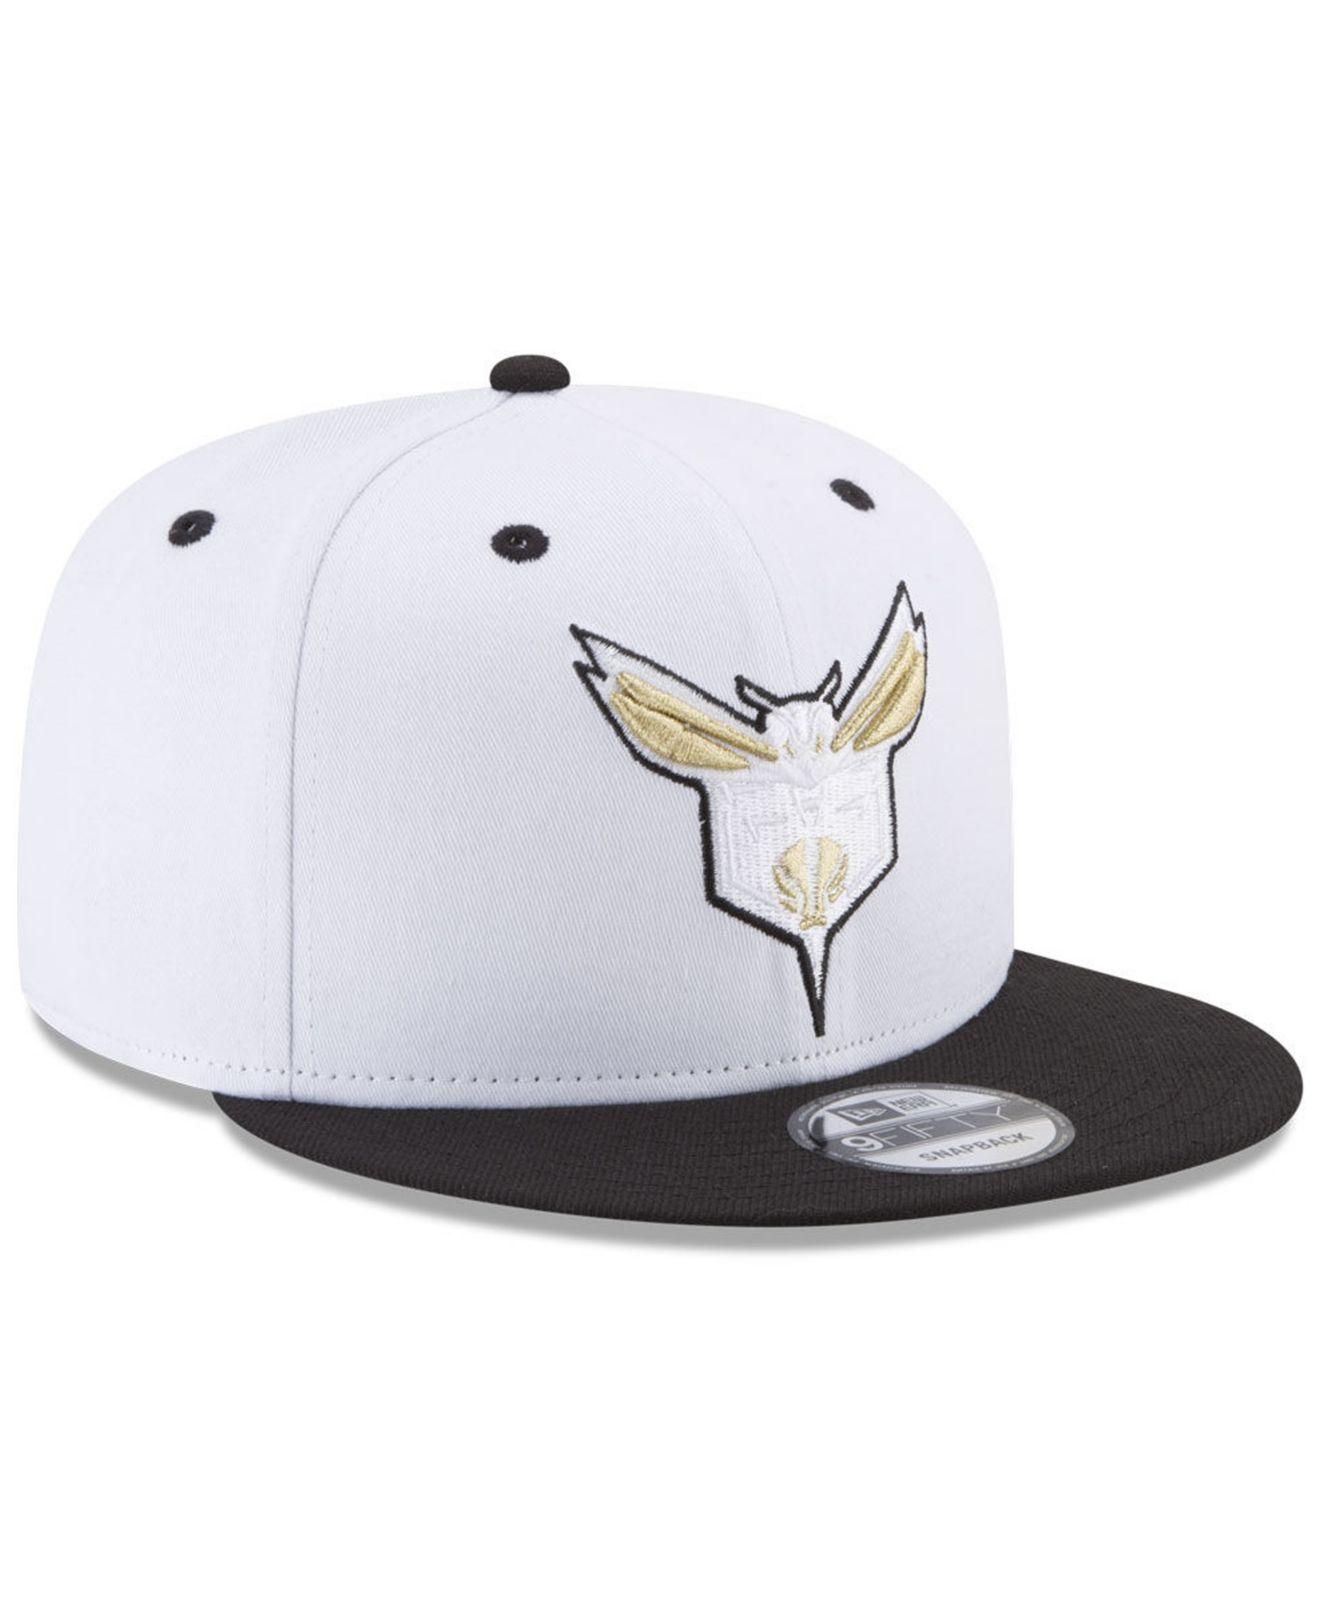 huge discount 57cfd 330a1 KTZ - White Charlotte Hornets Double Twist 9fifty Snapback Cap for Men -  Lyst. View fullscreen